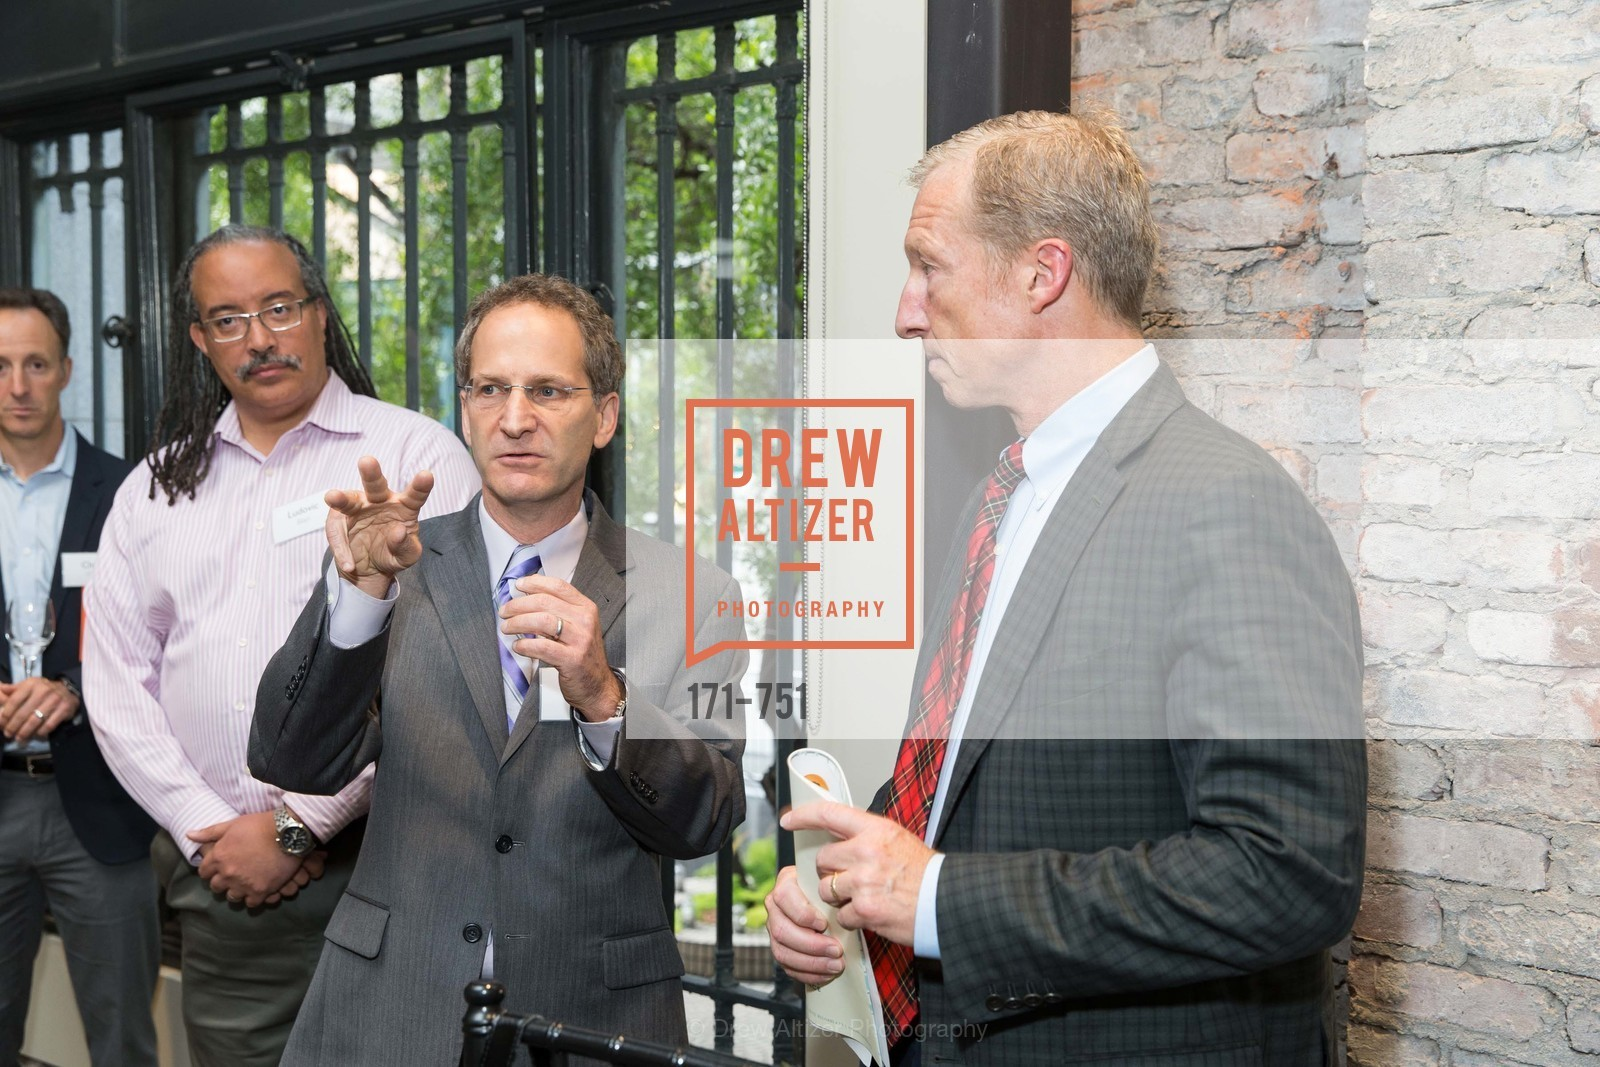 Ludovic Blain, Michael Green, Tom Steyer, CENTER FOR ENVIRONMENTAL HEALTH (CEH) 2015 Gala, Bently Reserve, May 28th, 2015,Drew Altizer, Drew Altizer Photography, full-service agency, private events, San Francisco photographer, photographer california